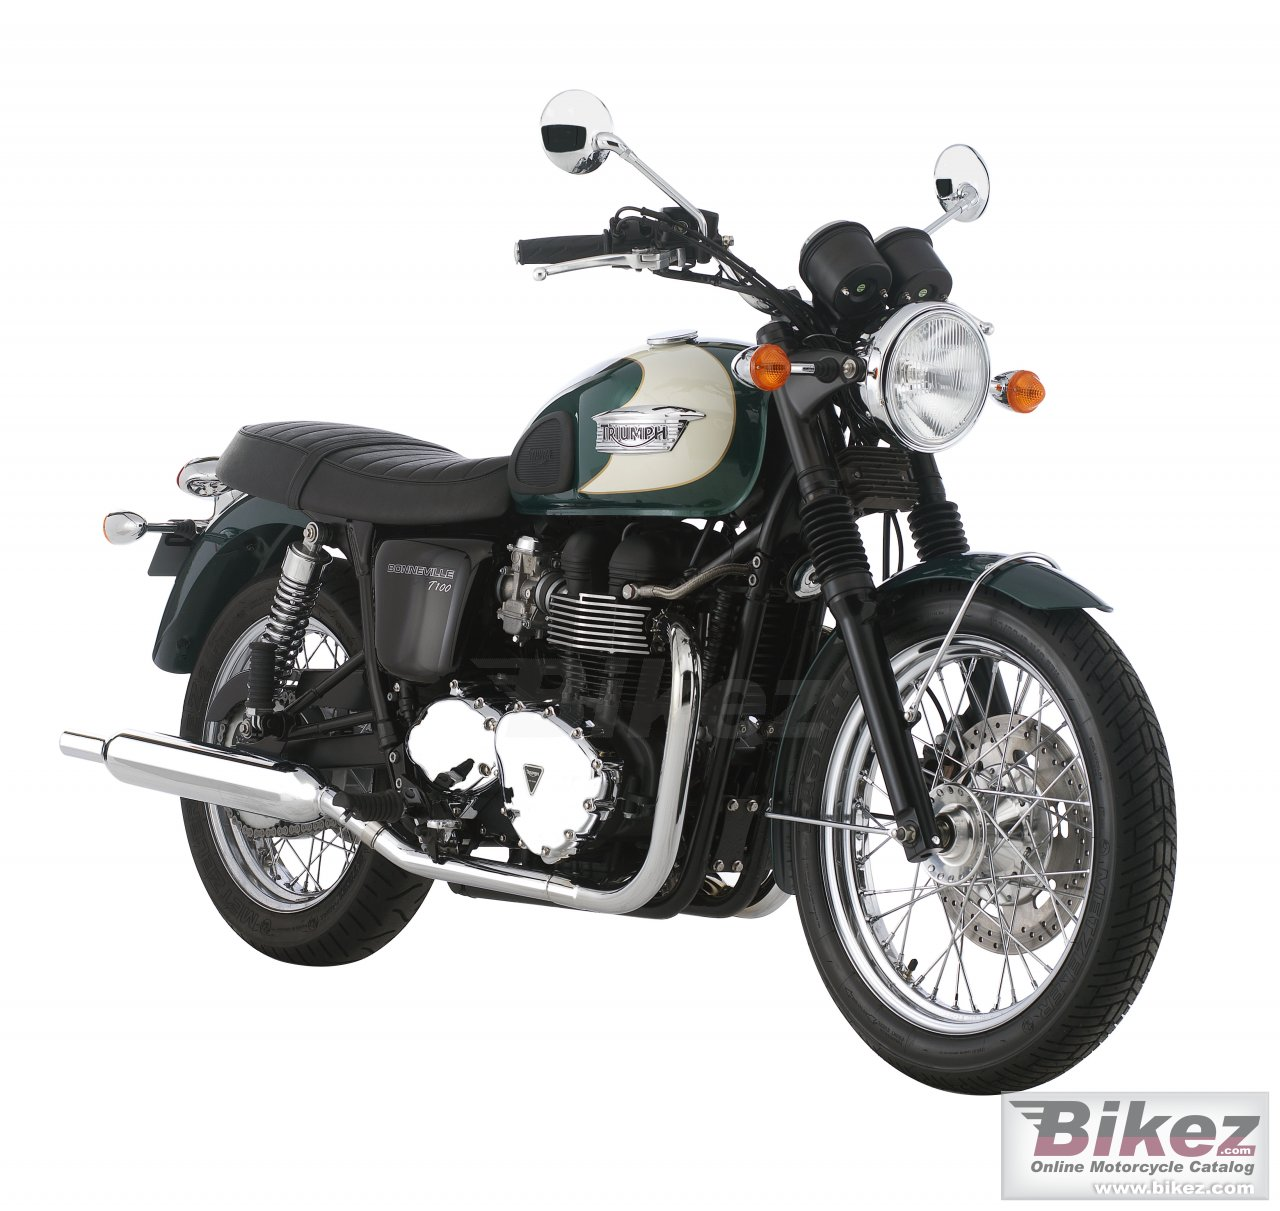 Big Triumph bonneville t100 picture and wallpaper from Bikez.com